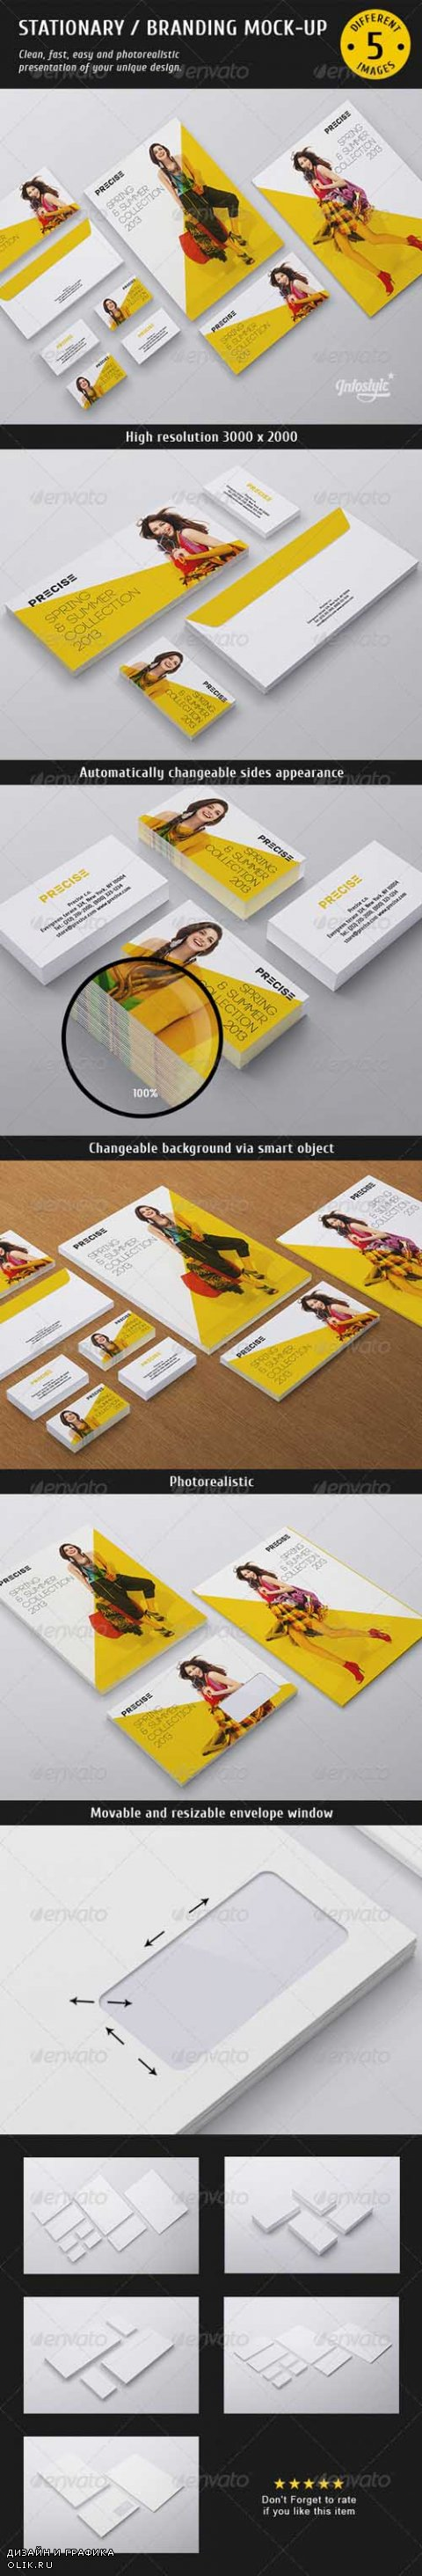 Stationery / Branding Mock-up 4048810